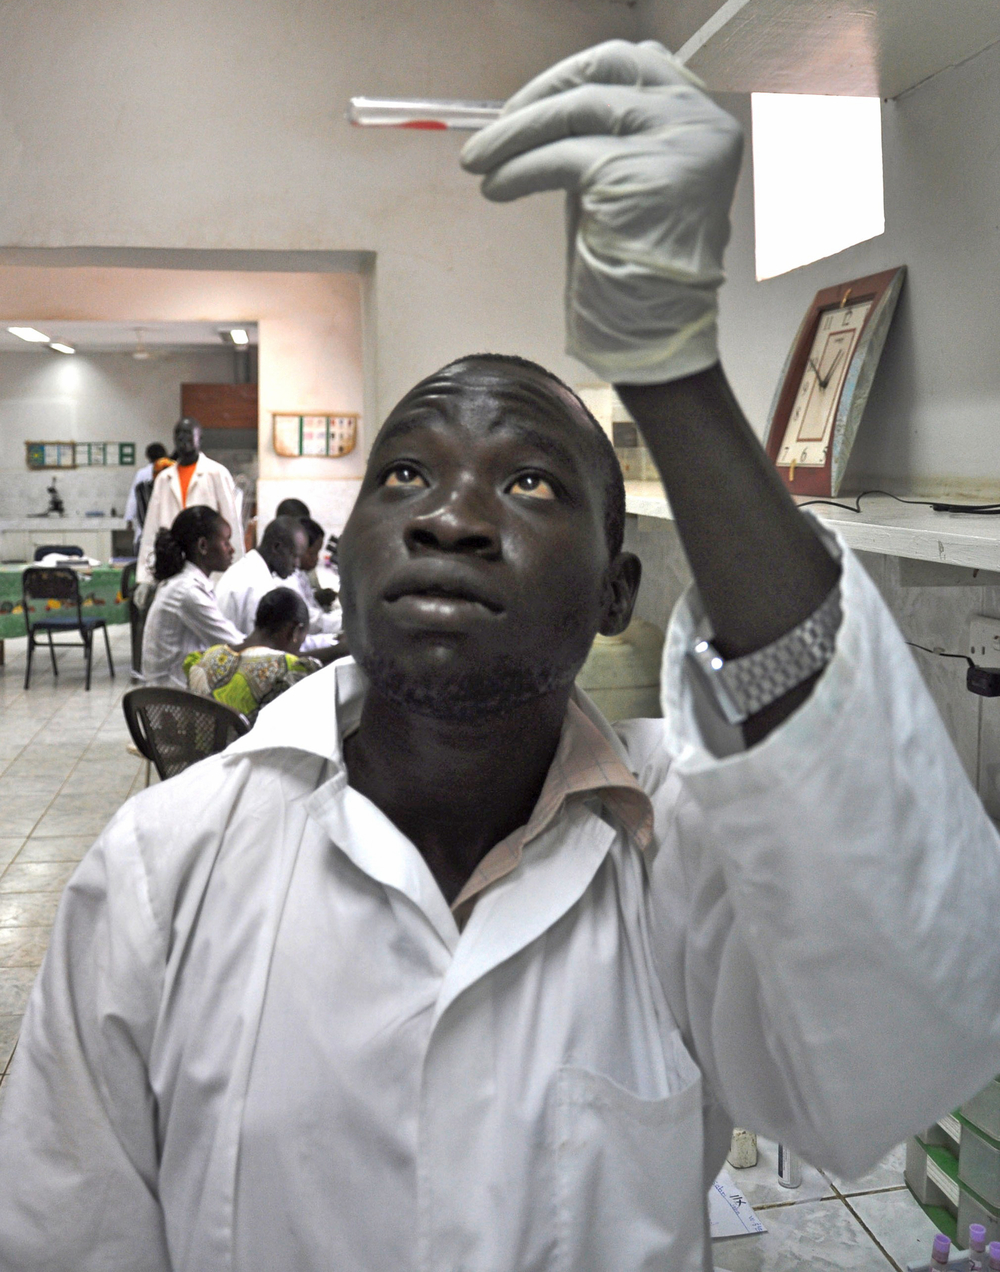 A technician in Juba hospital, South Sudan, examines a blood sample. The new country faces a critical shortage of blood